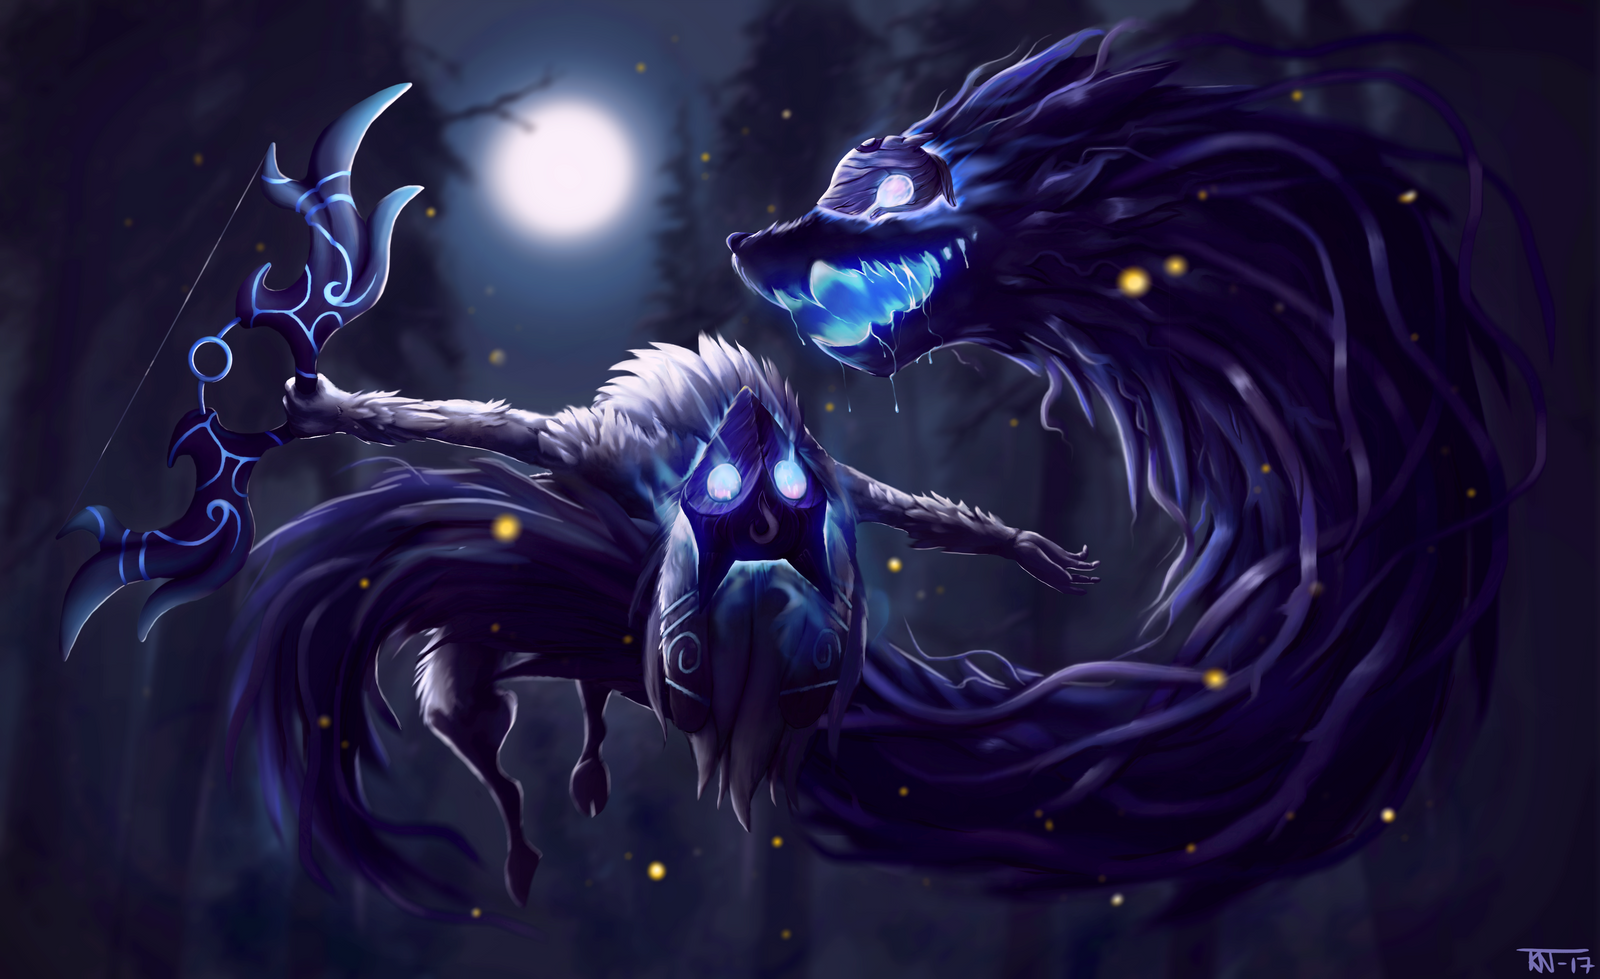 How To Paint A Mural On A Wall Kindred League Of Legends Fanart By Trinemusen1 On